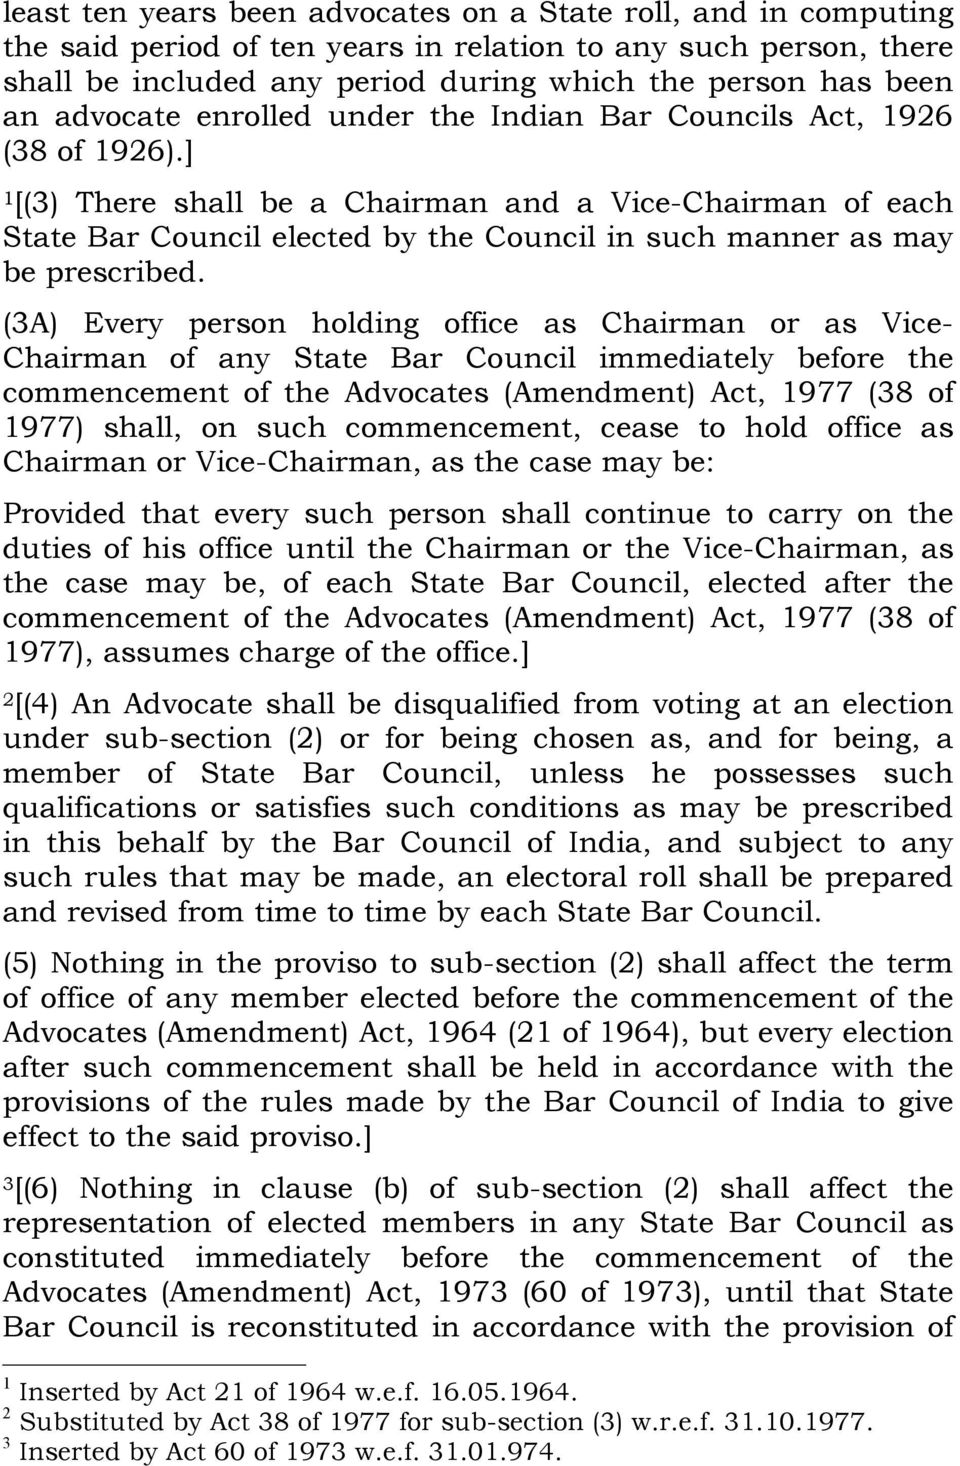 ] [(3) There shall be a Chairman and a Vice-Chairman of each State Bar Council elected by the Council in such manner as may be prescribed.